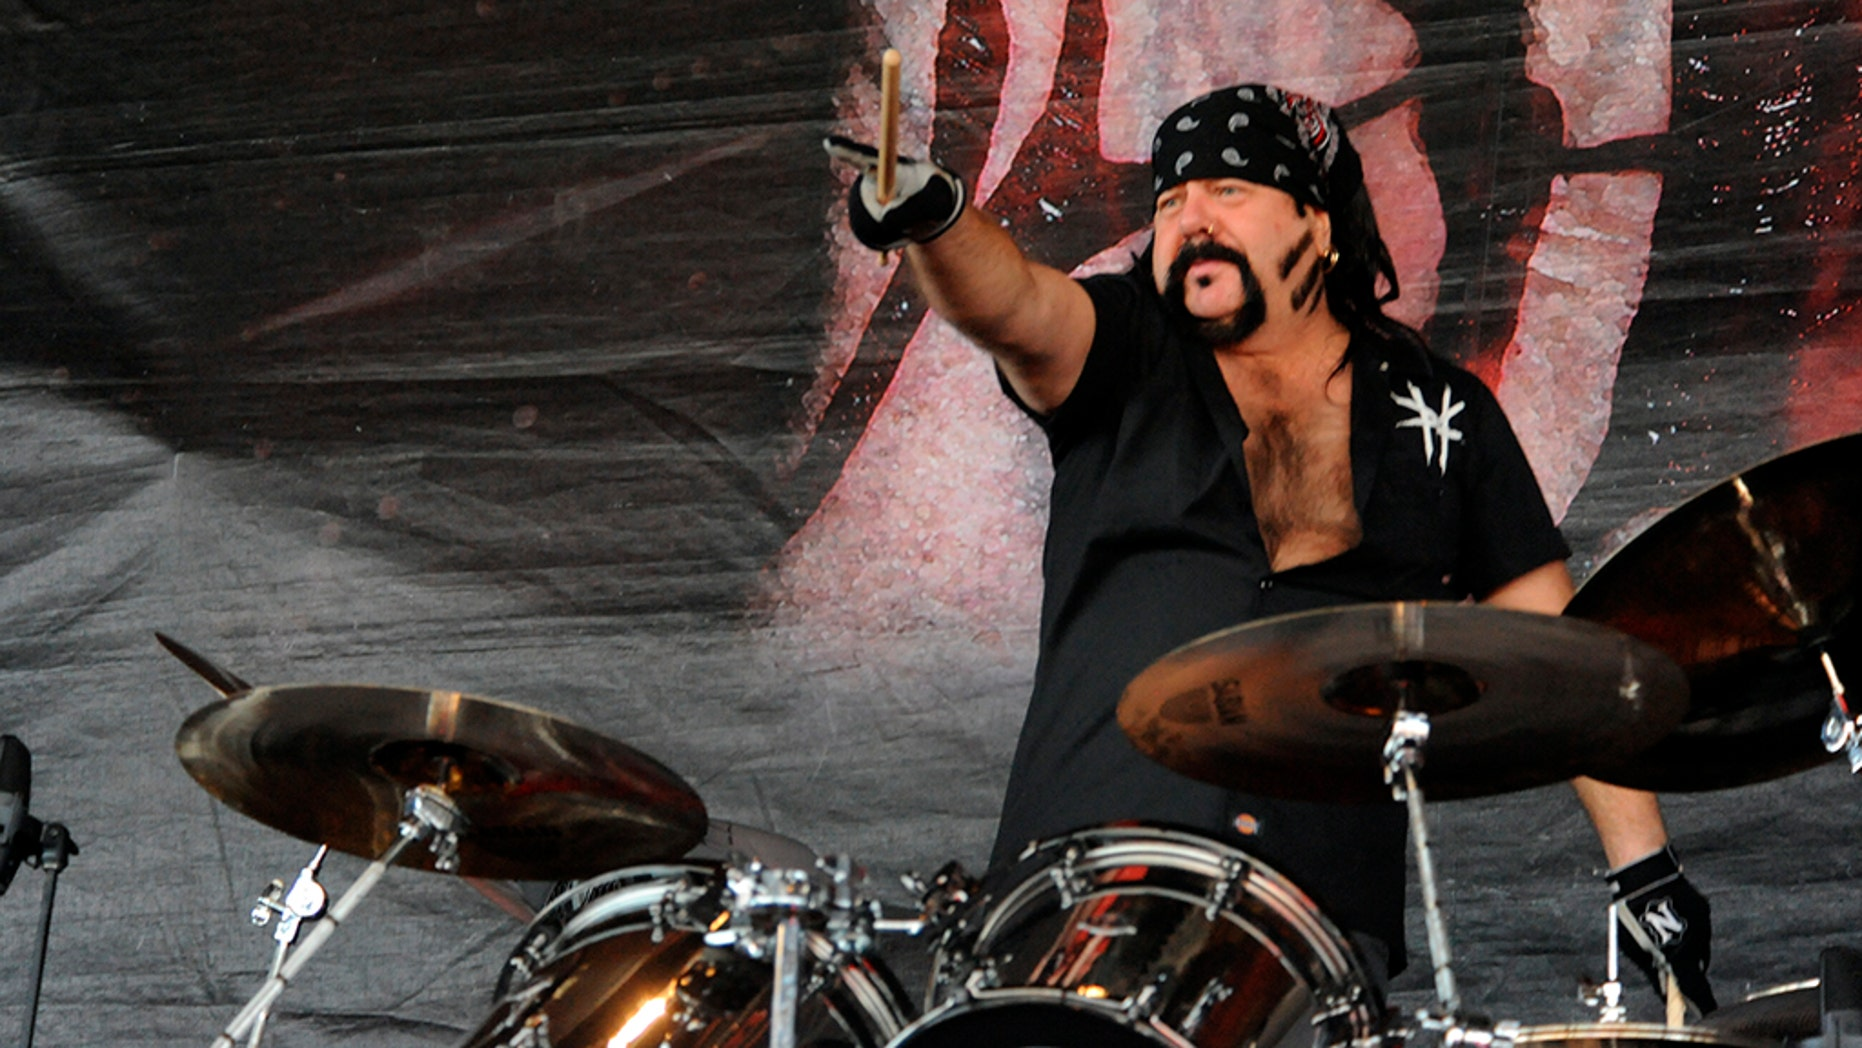 Vinnie Paul has passed away at the age of 54.